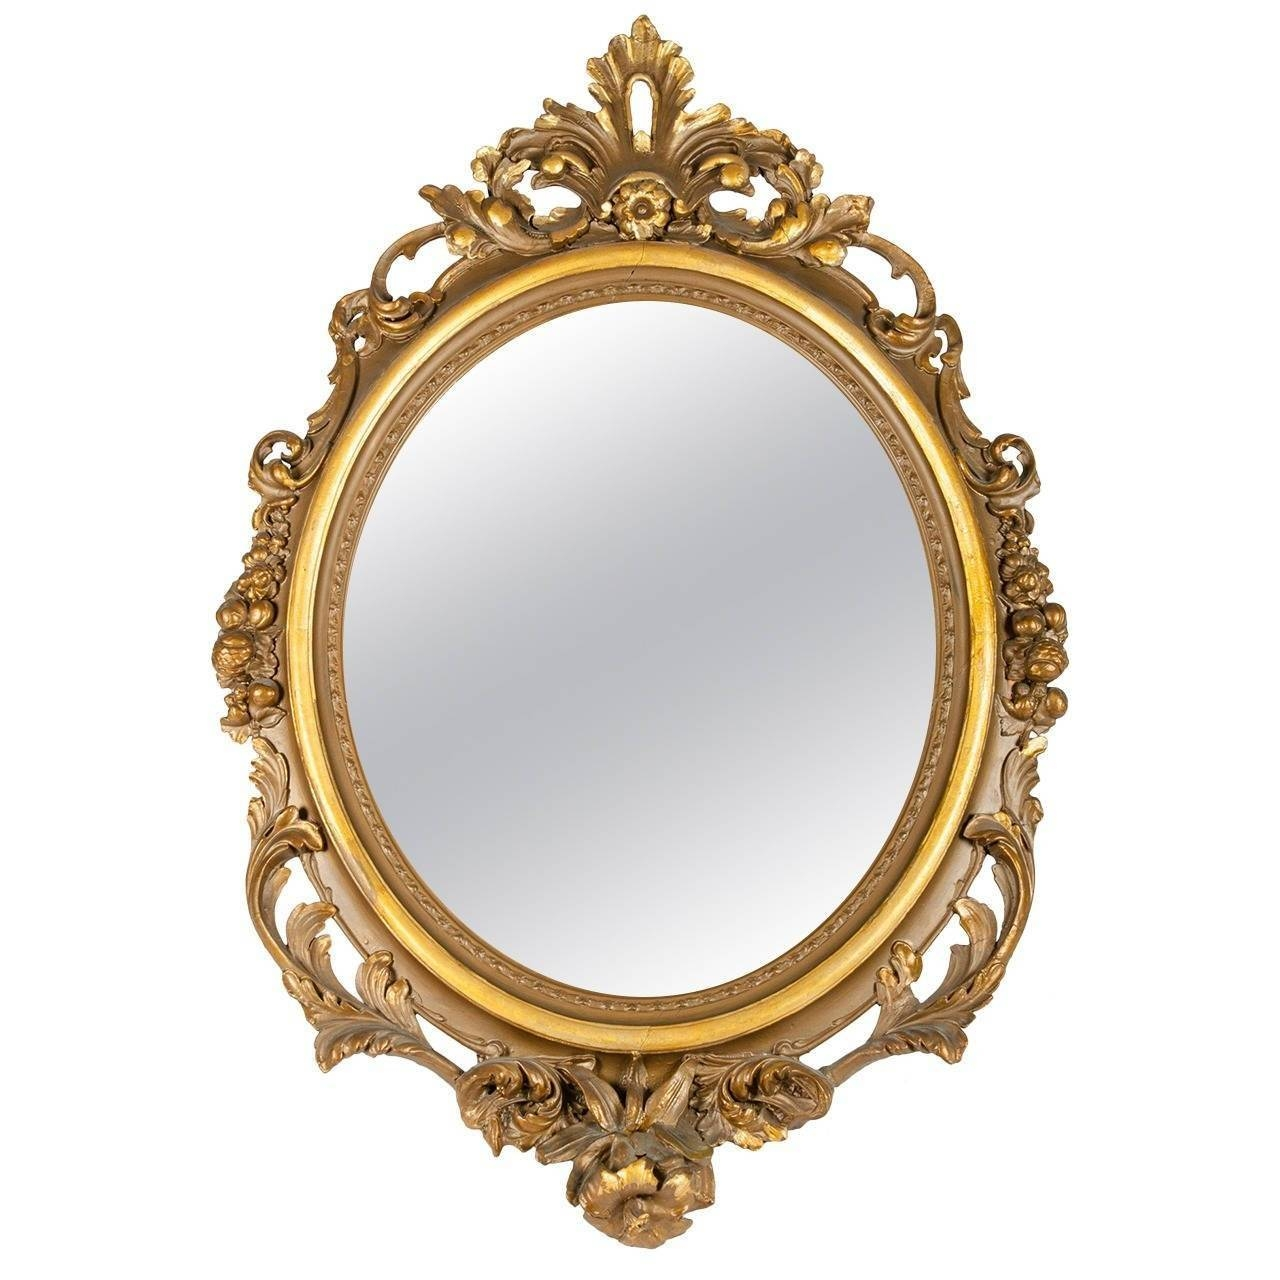 Mirror : Large Round Wall Mirror Awesome Exterior With Simple With Large Round Gold Mirrors (View 14 of 15)